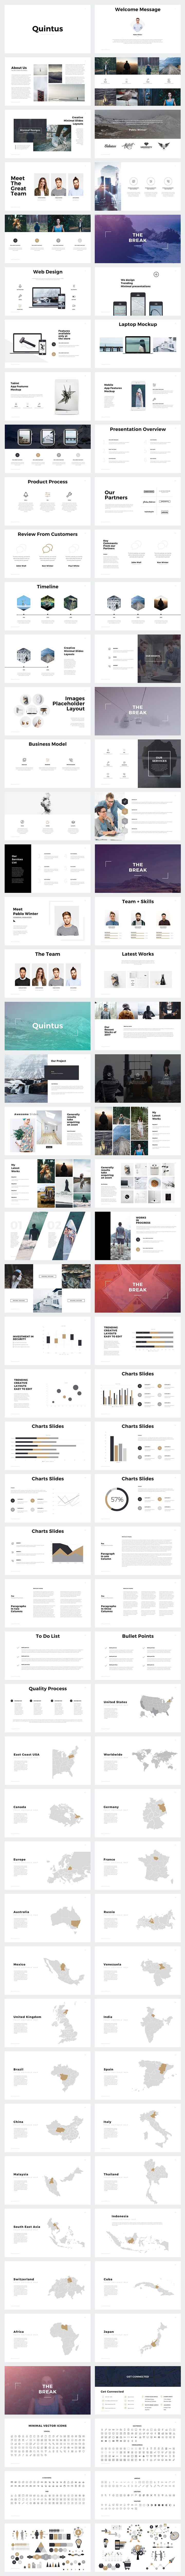 best ideas about presentation layout layout present your works professional and clean quintus minimal this powerpoint presentation template has got